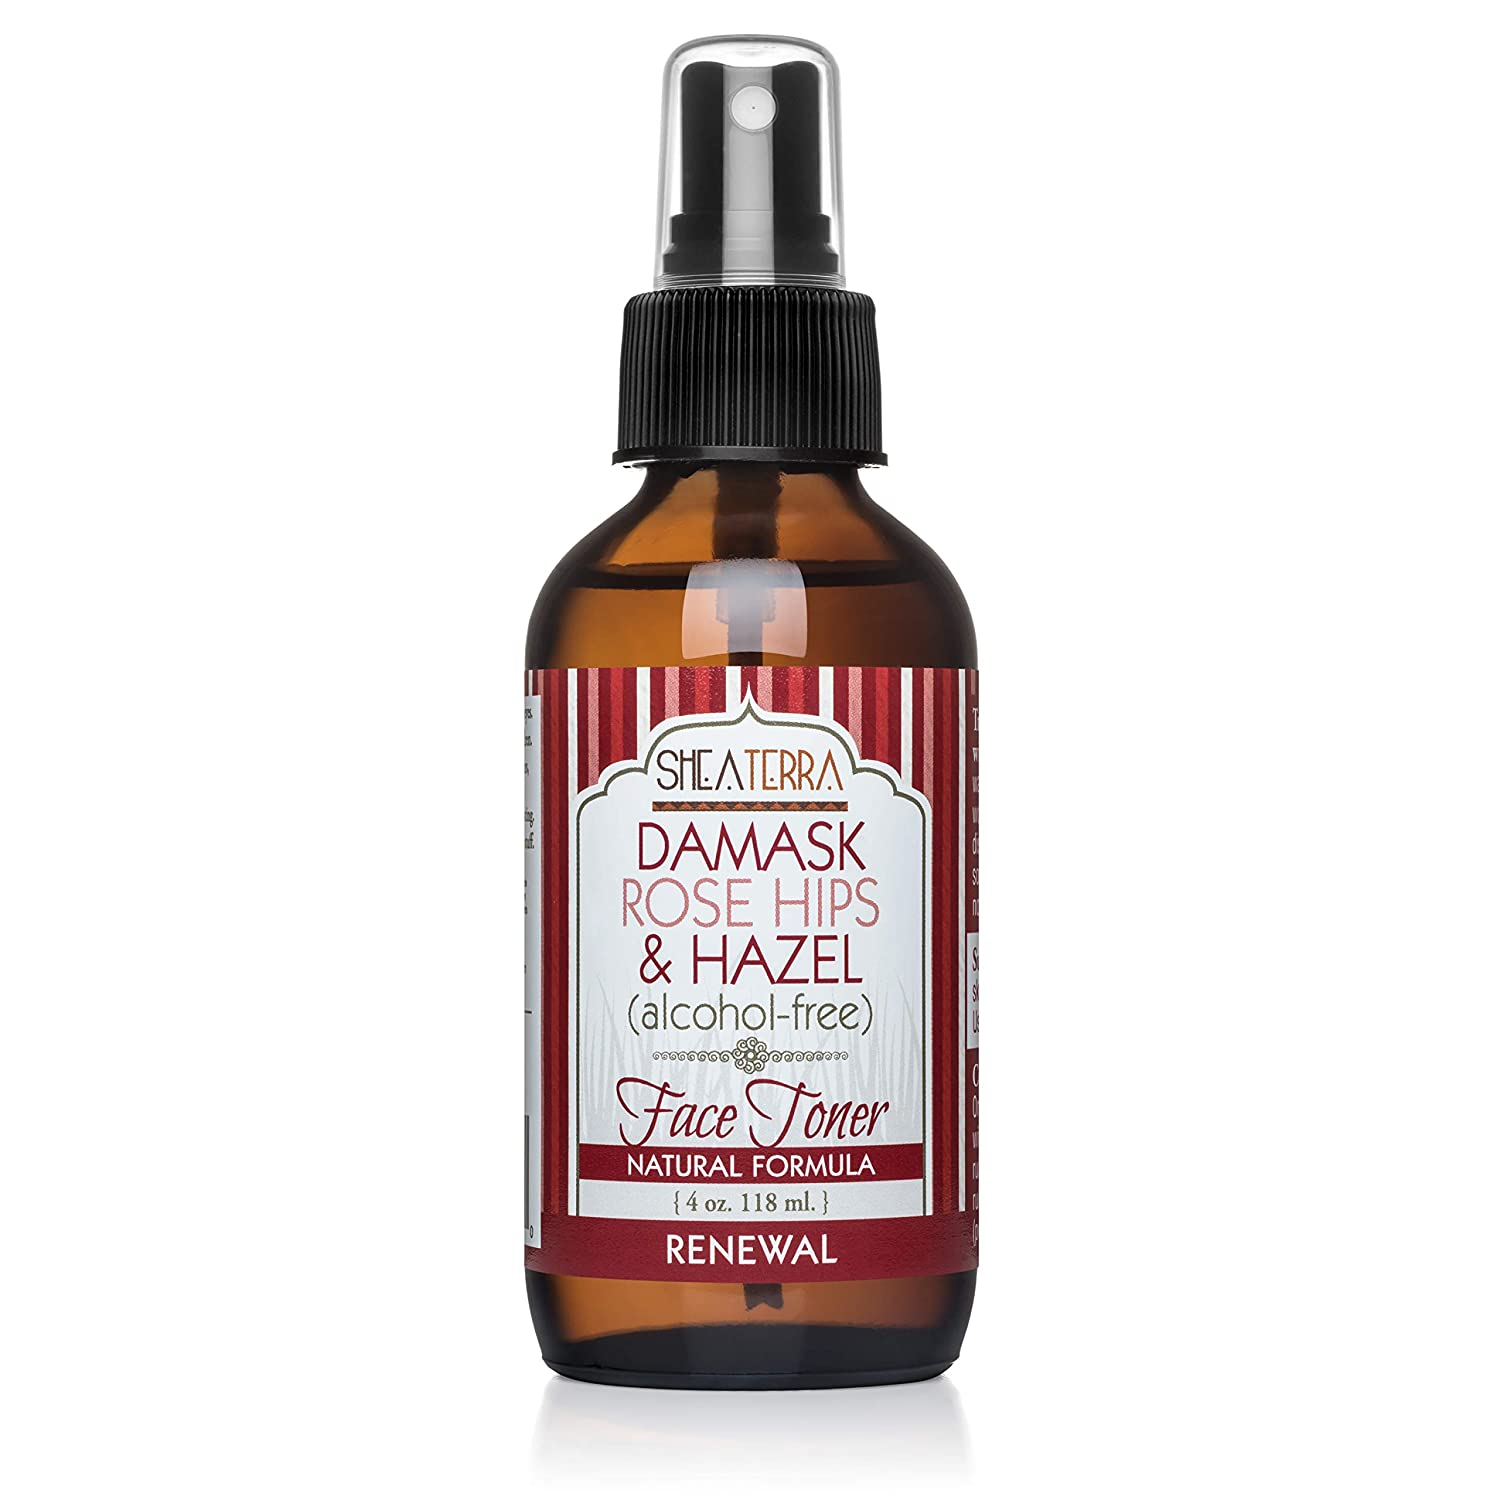 Shea Terra Organics Beauty Water, Toner & Face Mist – Damask Rose Hips & Hazel | Natural Daily Hydrating Toner with Anti-Aging Rose & Witch Hazel to Soothe & Cleanse Inflamed Skin & Fight Acne – 4 oz : Body Scrubs : Beauty